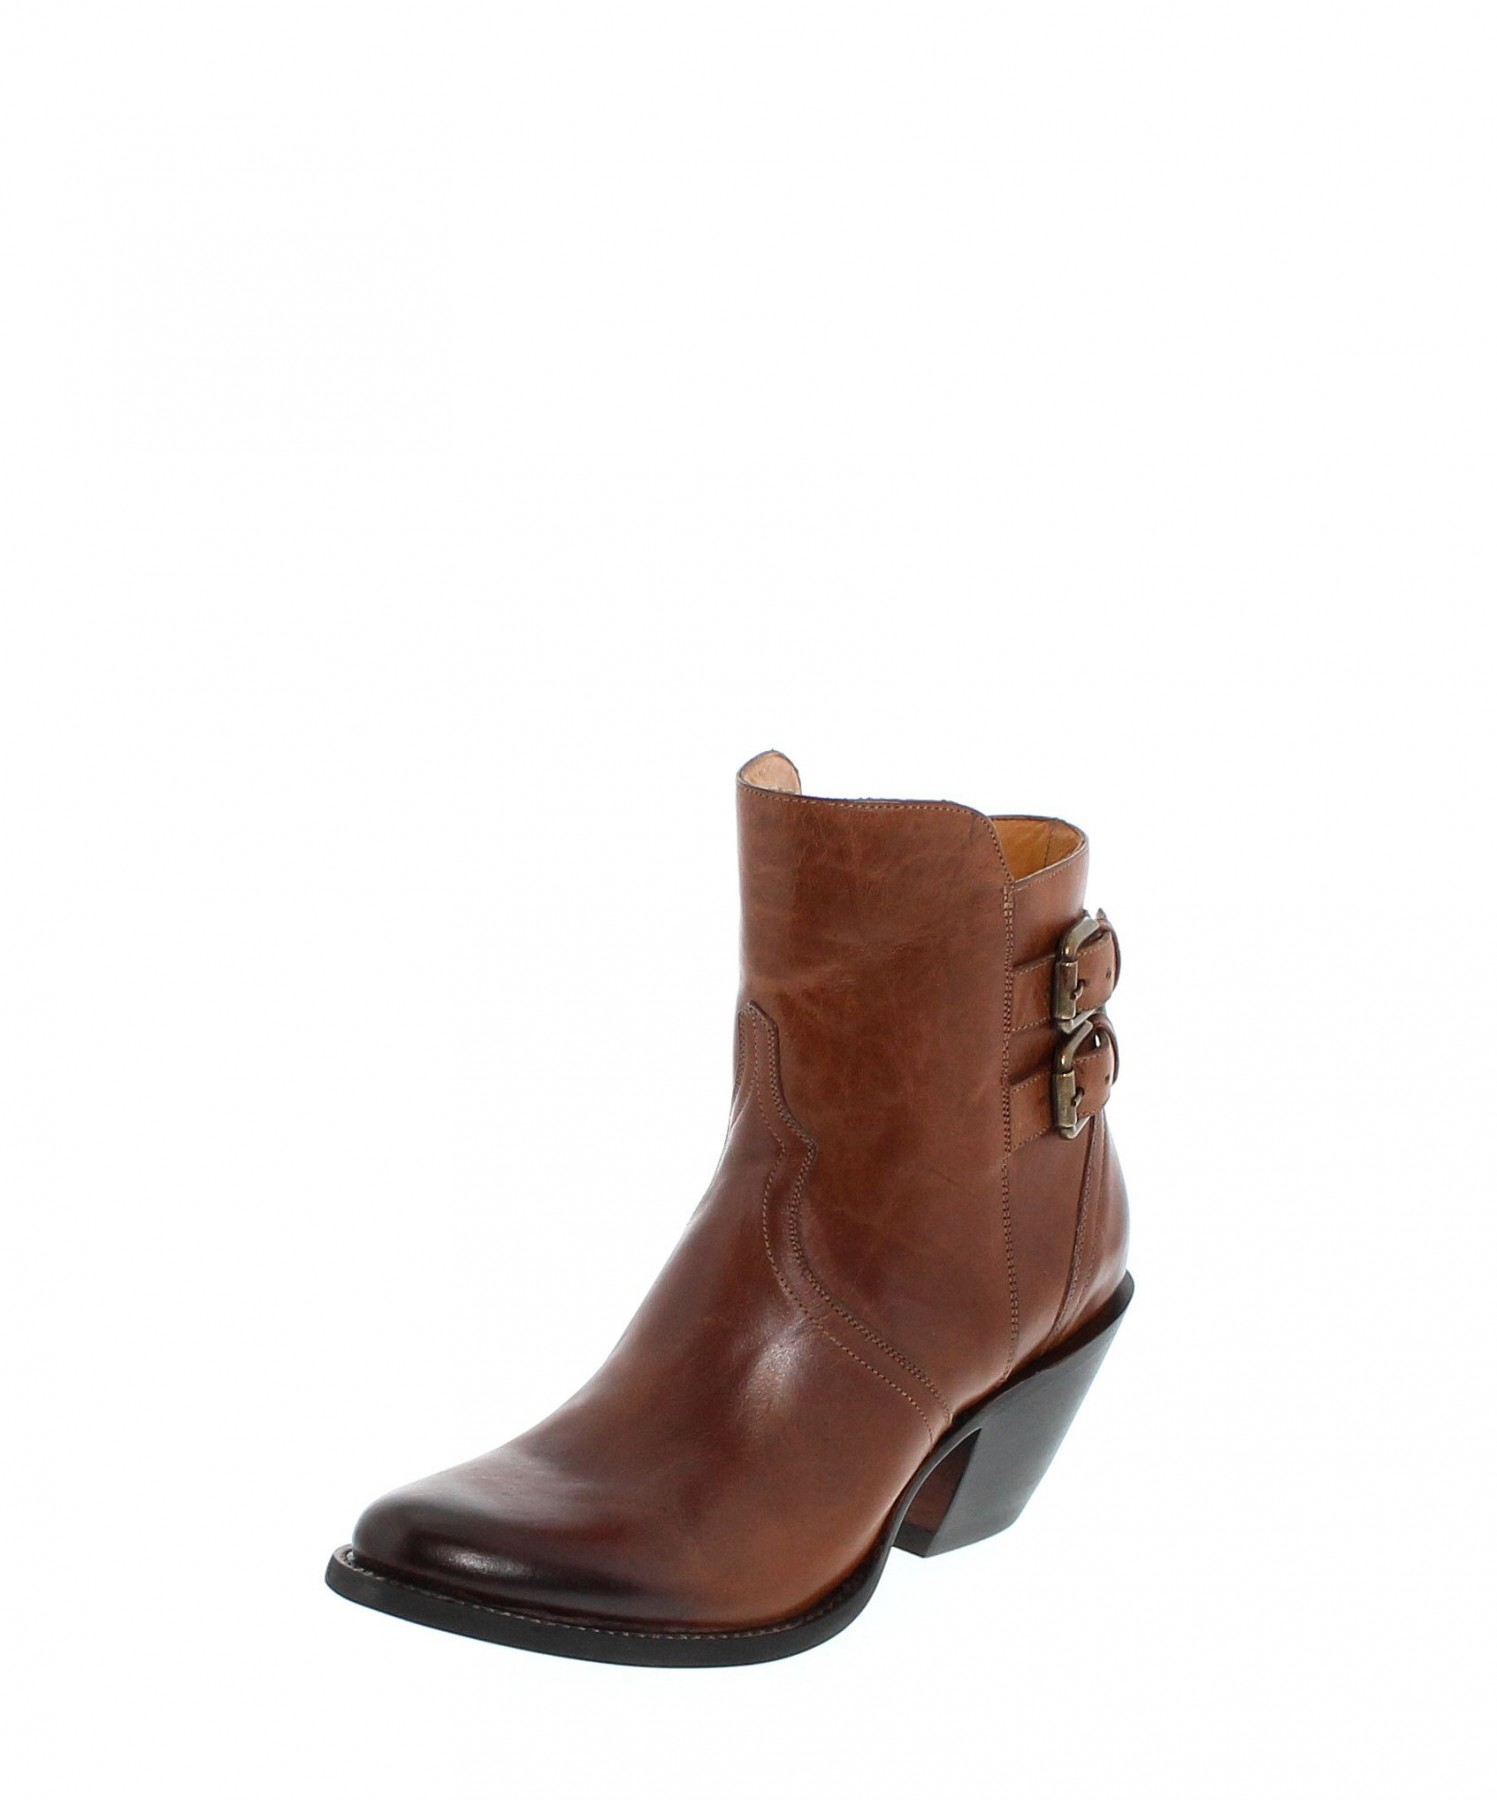 Lucchese CATALINA M4986 Cognac Fashion Stiefele...